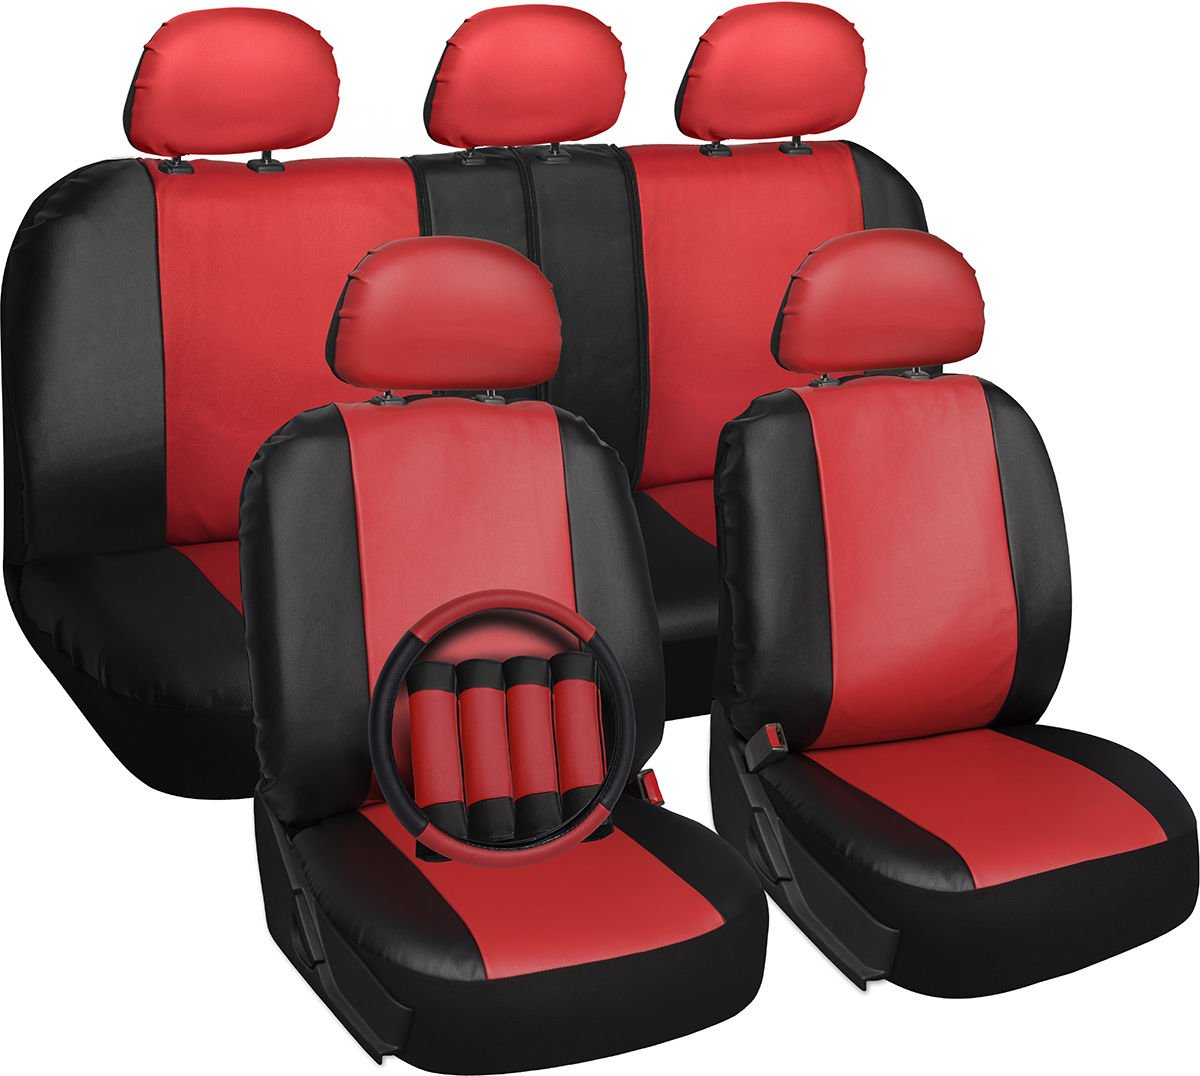 Faux Leather Car Seat Cover For Kia Soul Red With Steering